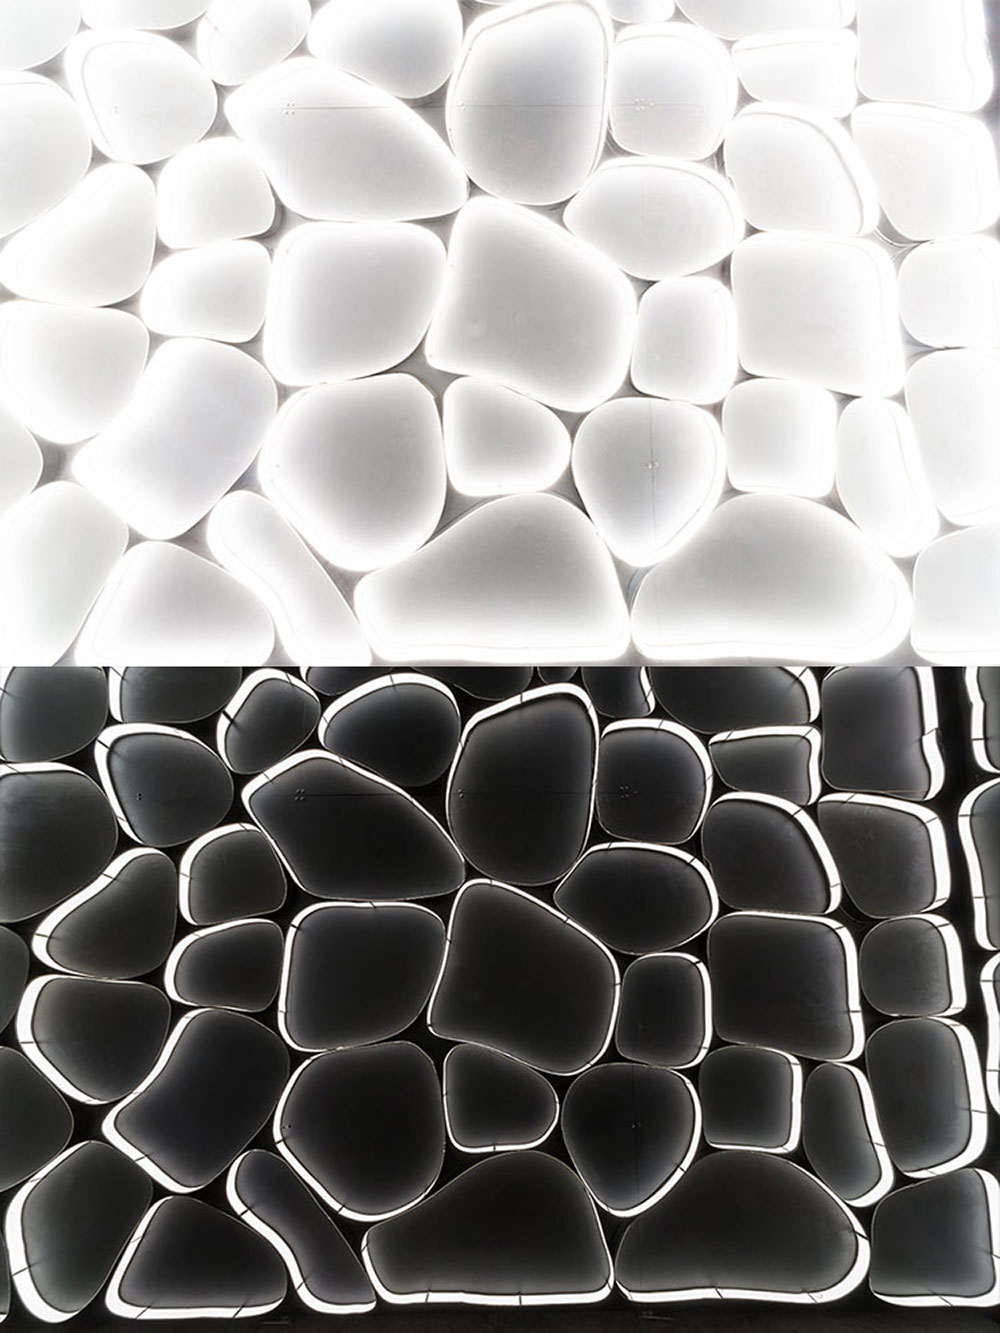 "Installation lampes led ""Flexible OLED"" par Thierry Gauguin pour BlackBody (bas) Interprétation artistique ""white Flexible OLED"" de la version originale Flexible OLED par Seen By Kloé pour Blog Esprit Design (haut)"